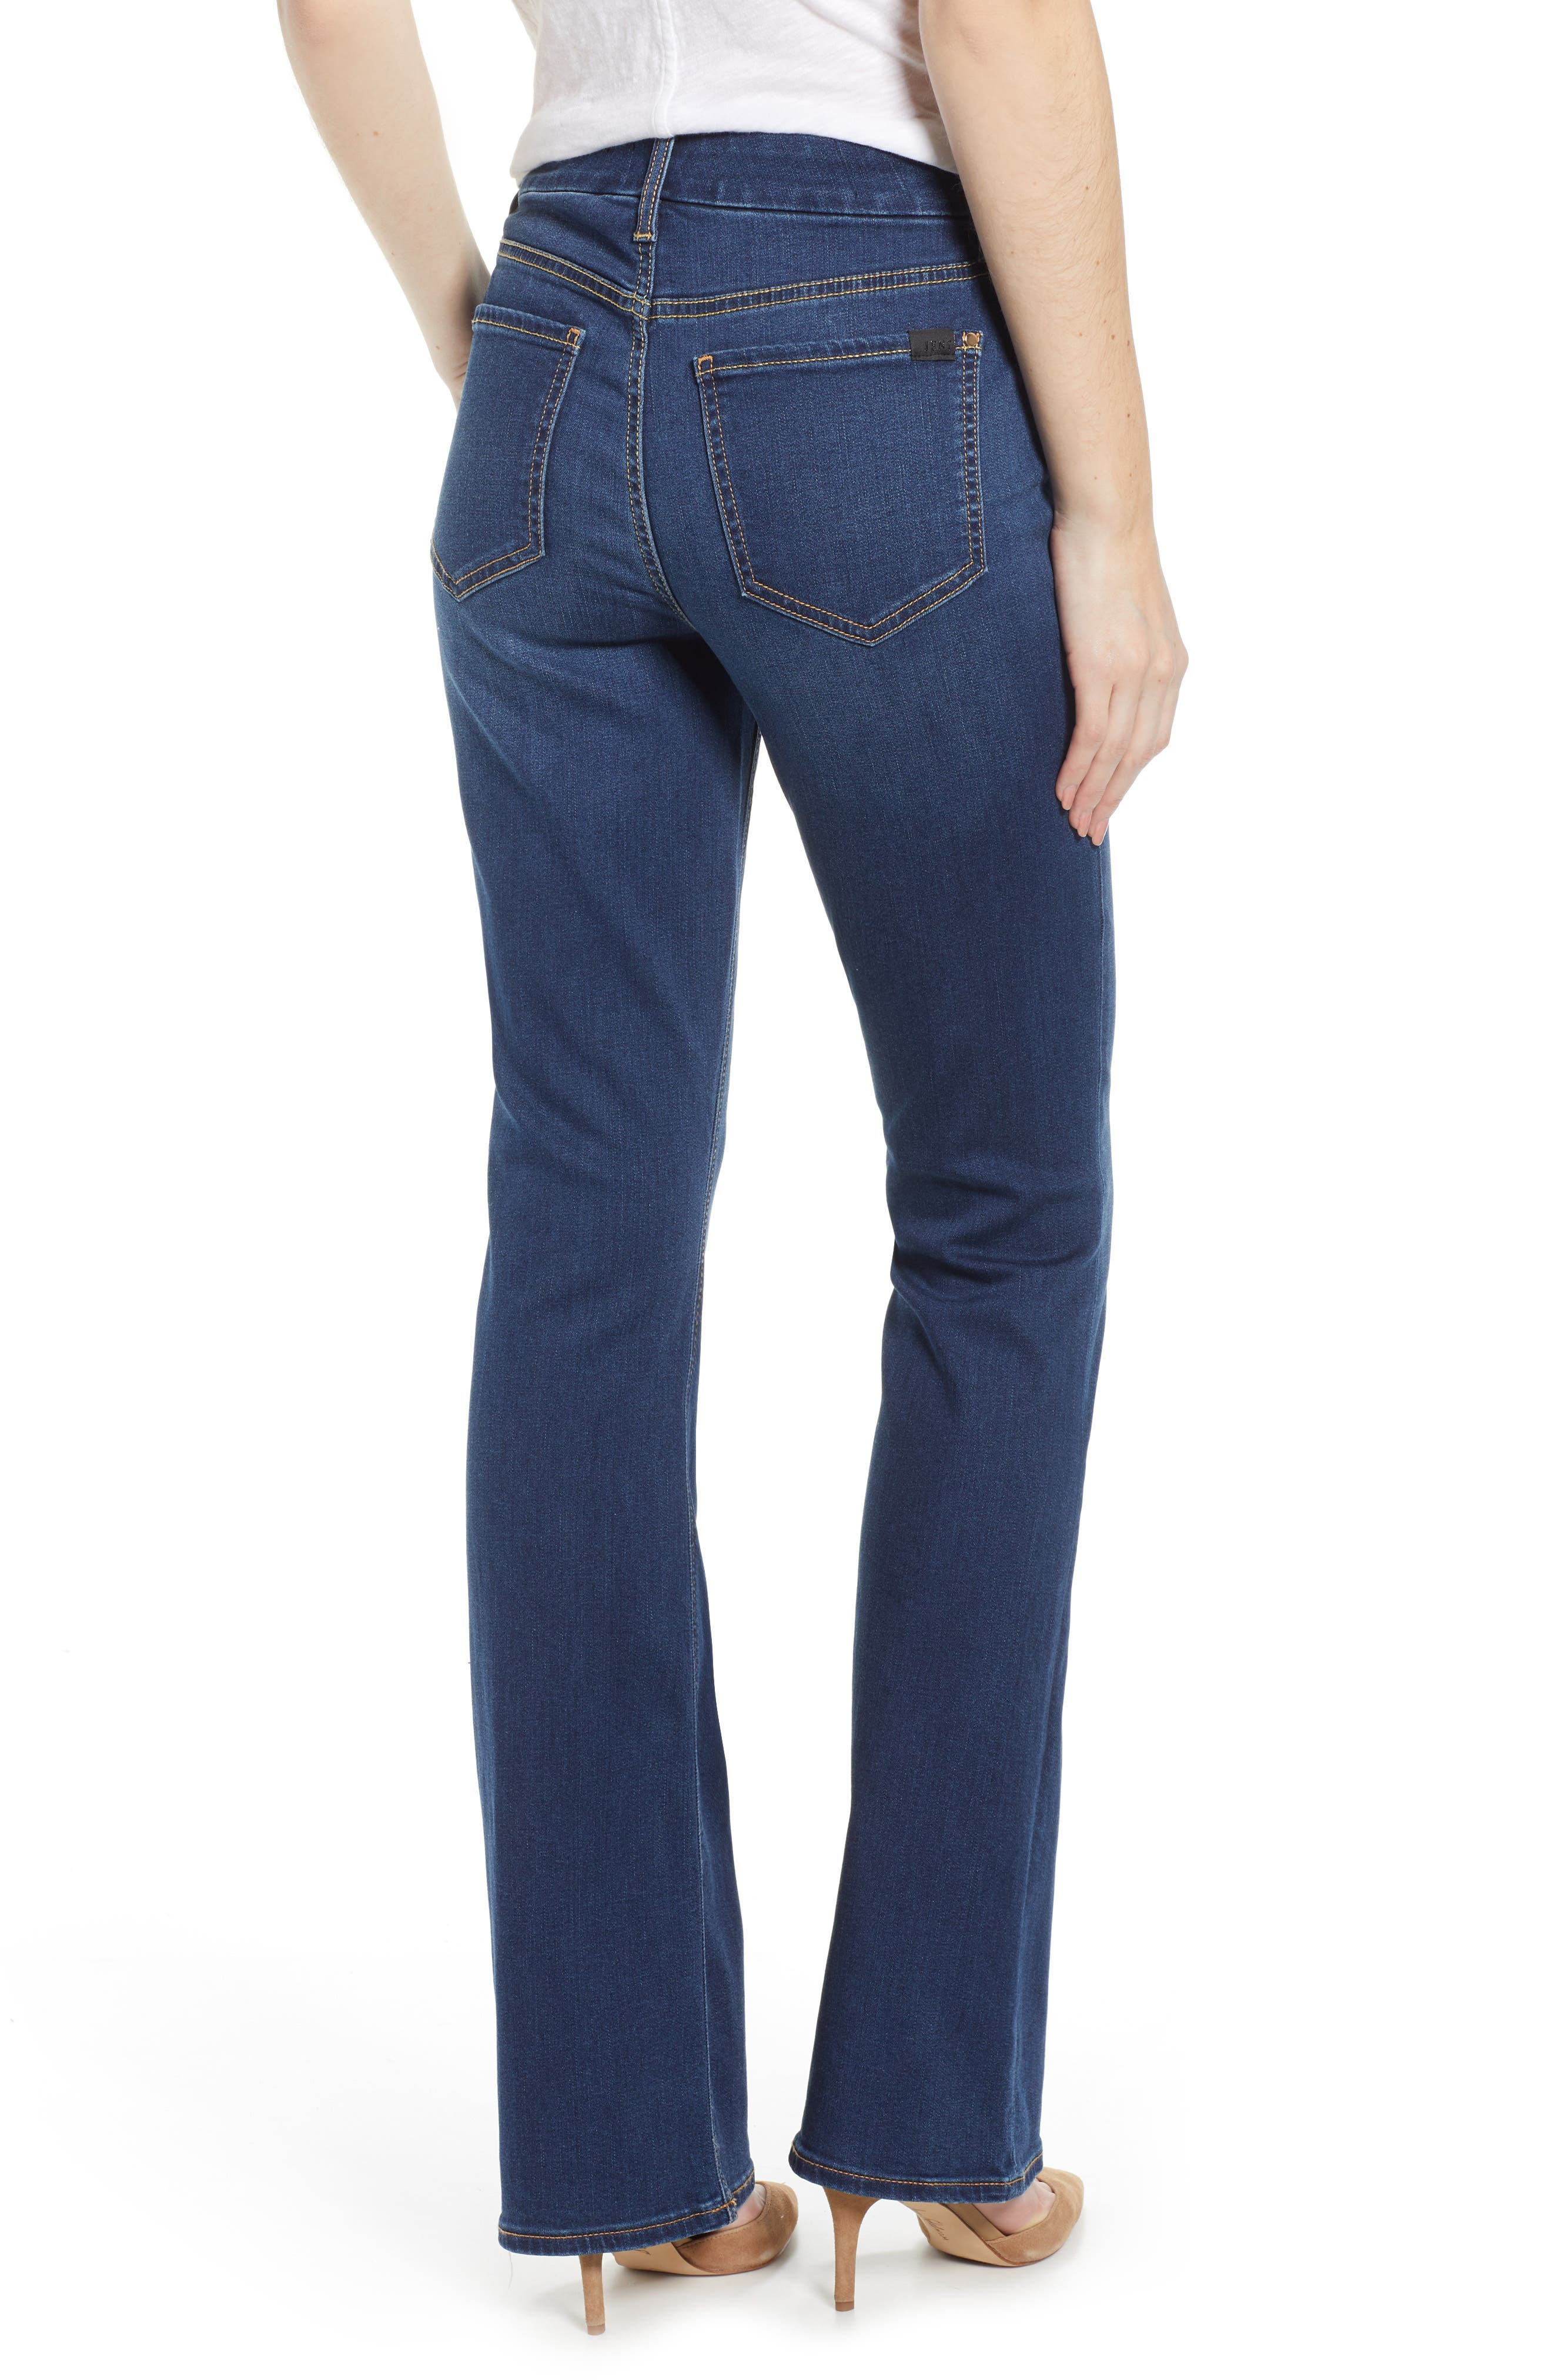 JEN7 BY 7 FOR ALL MANKIND, Slim Bootcut Jeans, Alternate thumbnail 2, color, CLASSIC MEDIUM BLUE